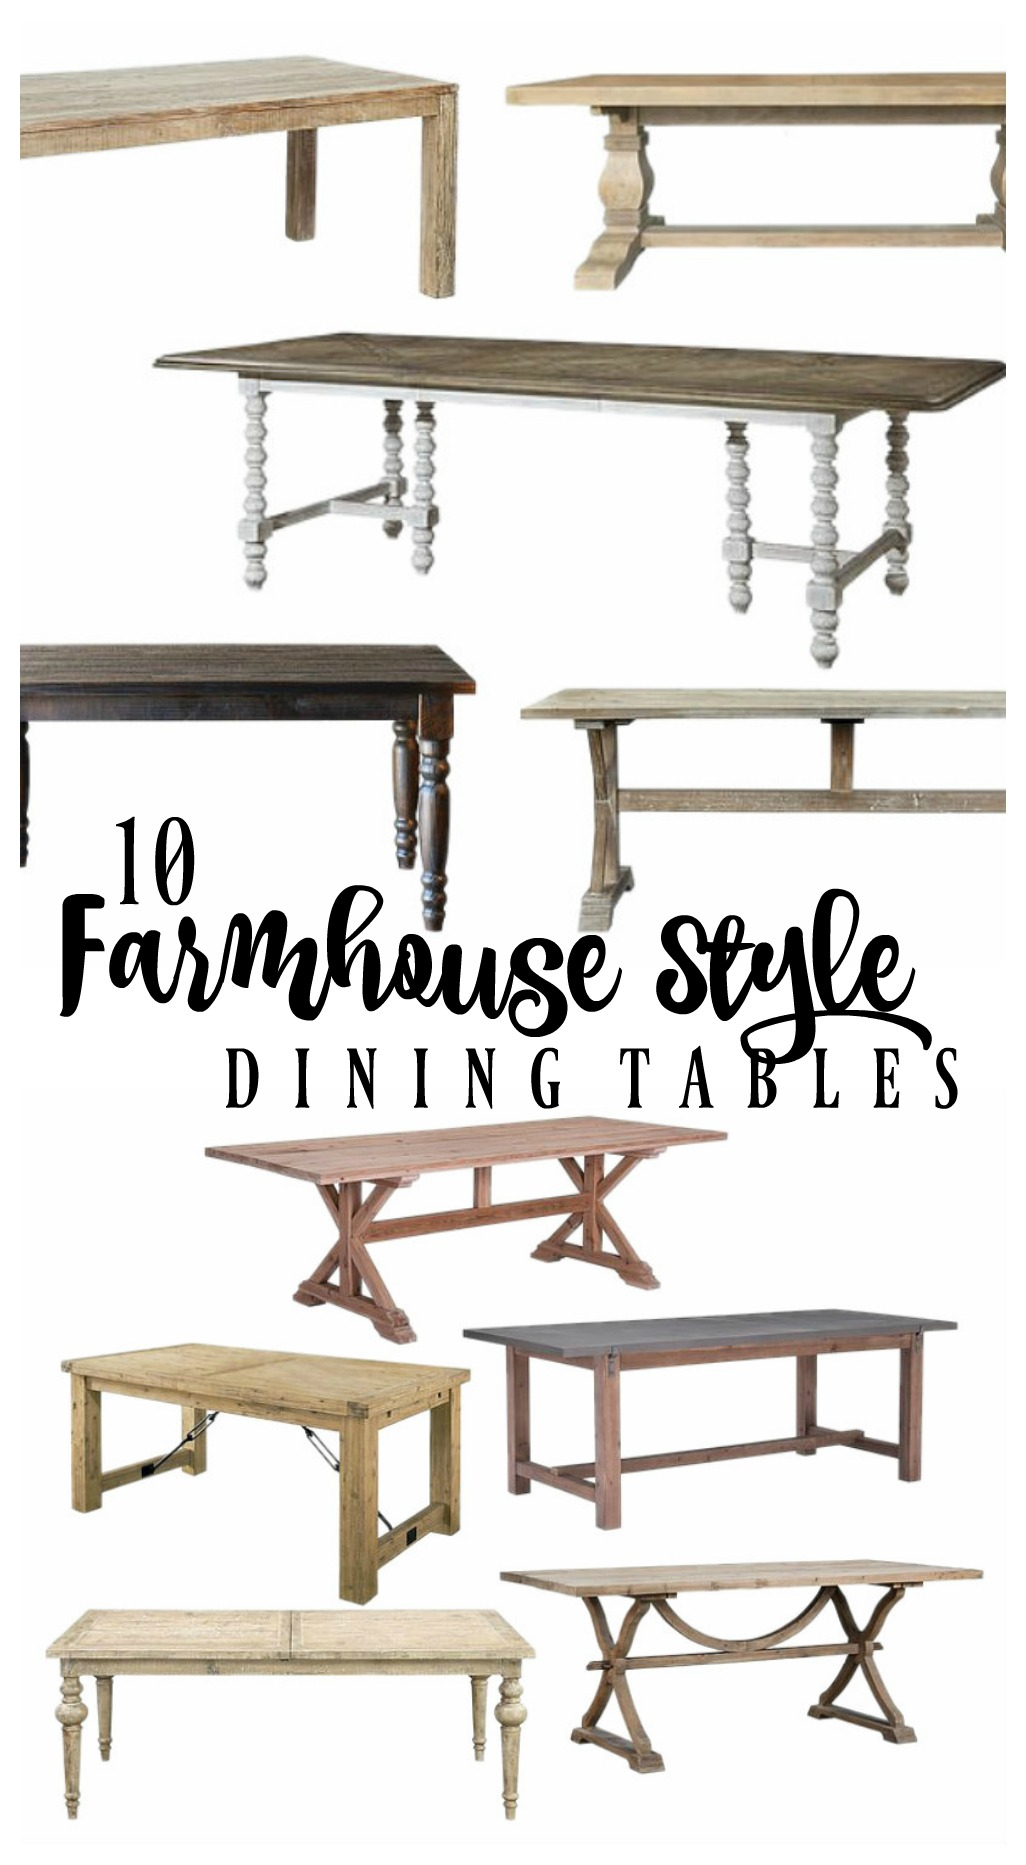 10 farmhouse style dining tables rooms for rent blog for Styling dining room table